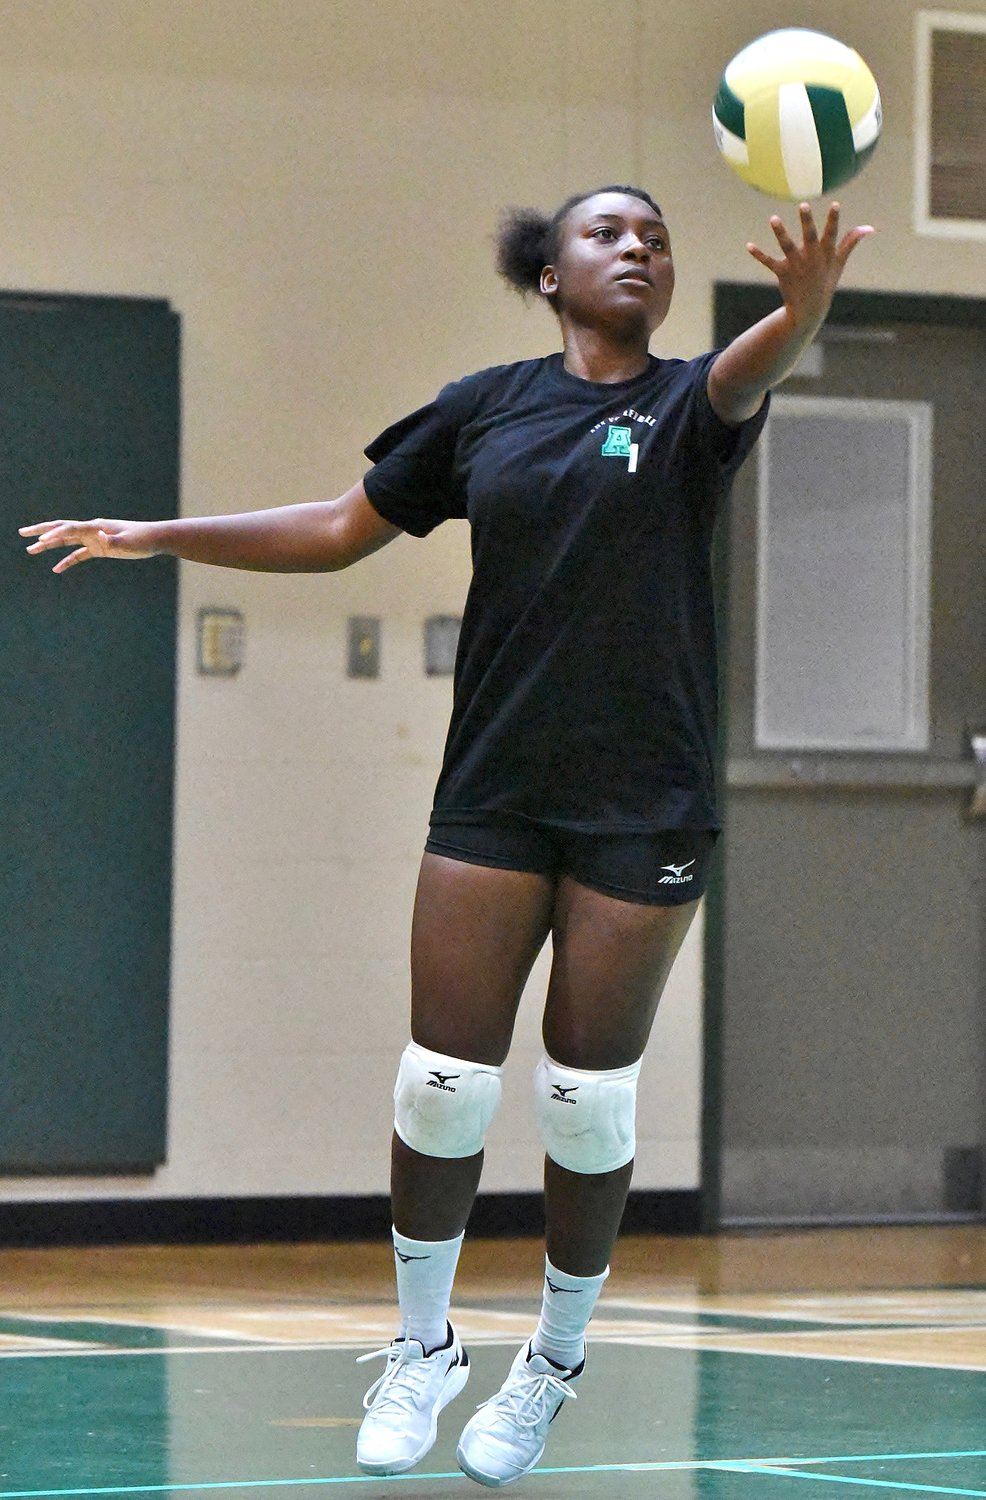 Adairsville senior Aaliyah Applin performs a jump serve during Thursday's home scrimmage against Christian Heritage.